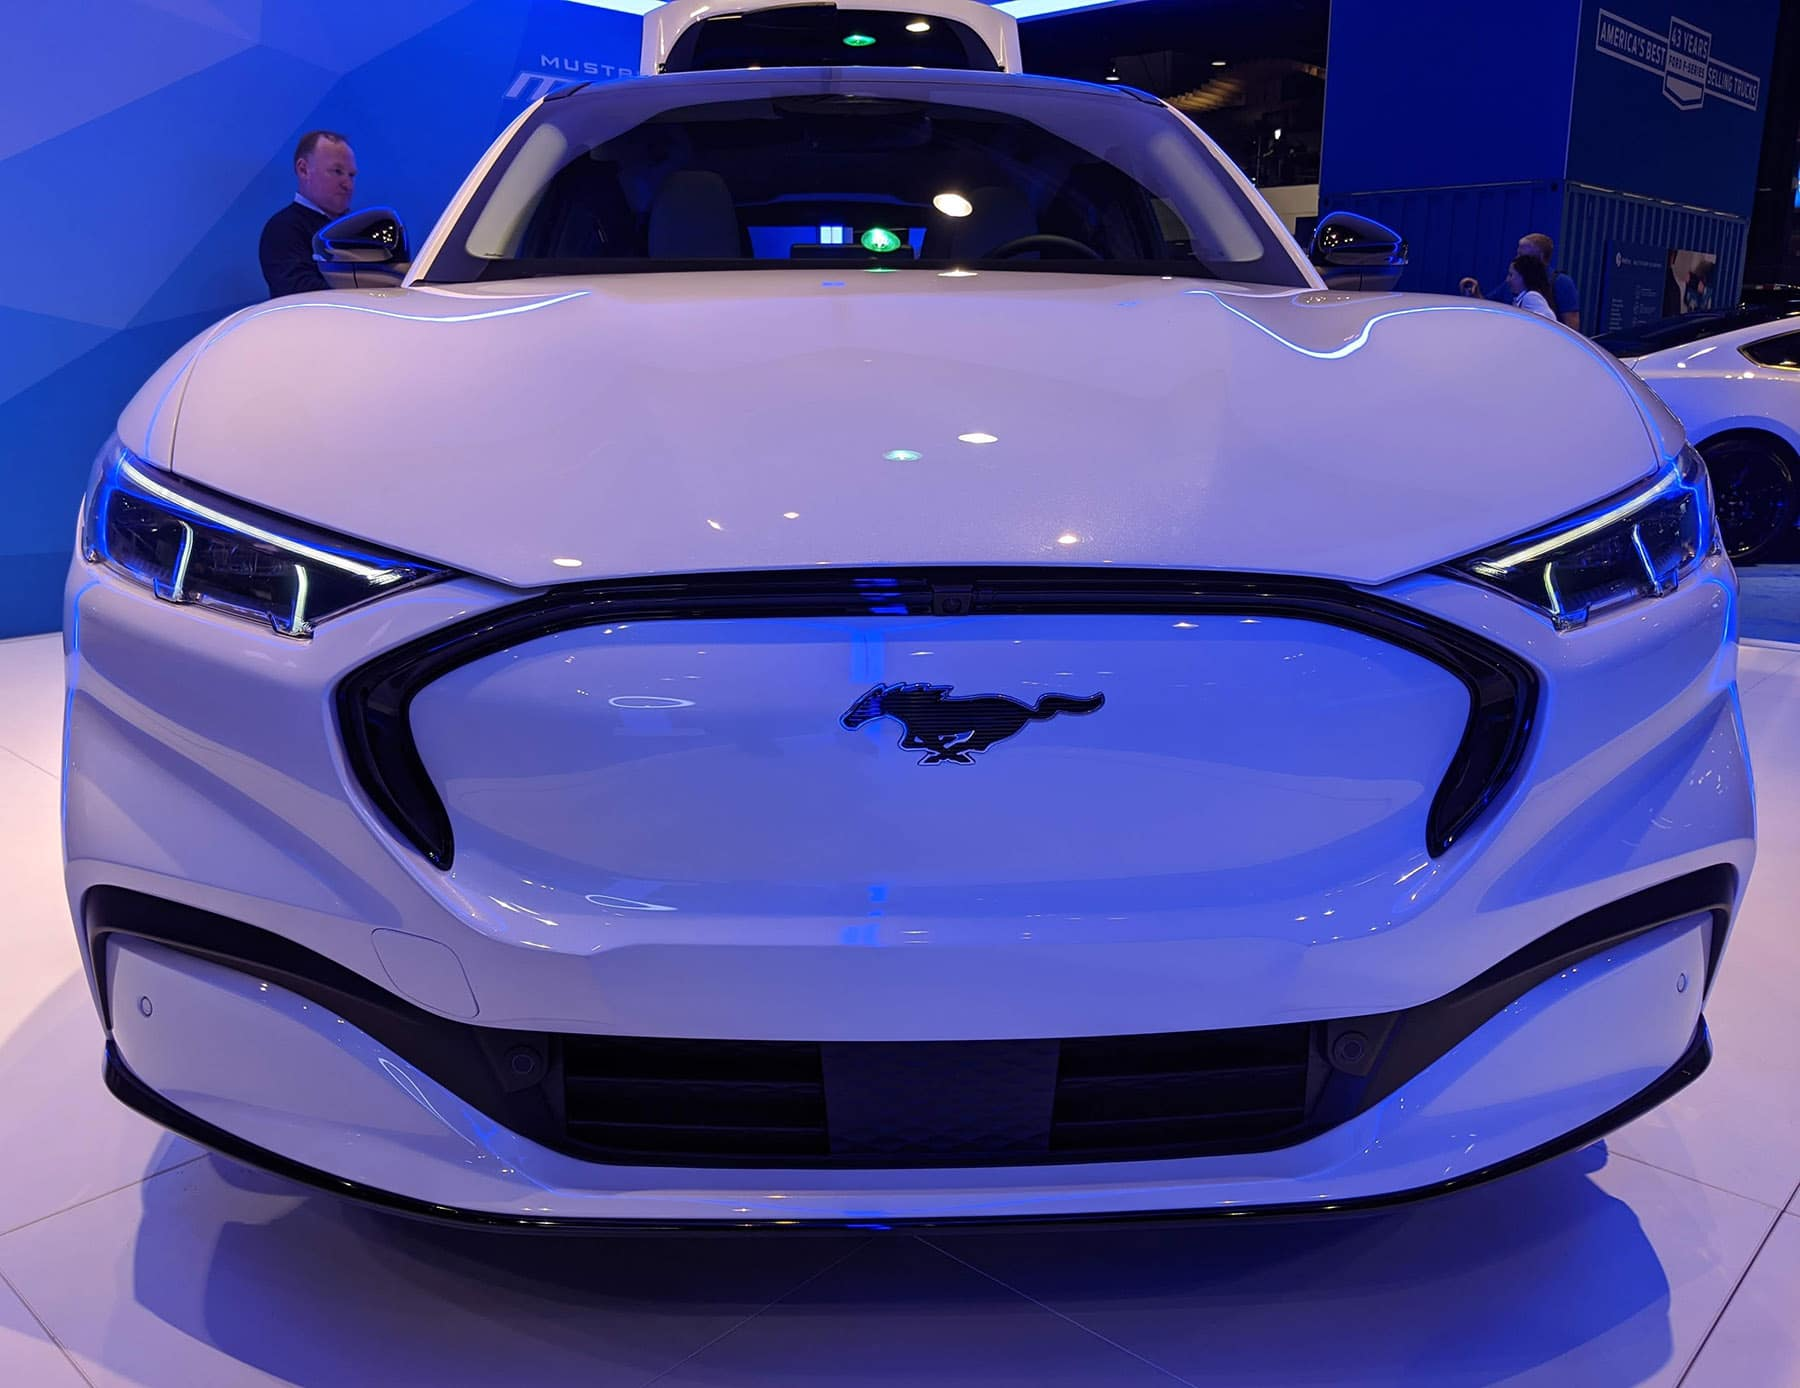 White 2021 Mustang Mach-E at 2020 Chicago Auto Show